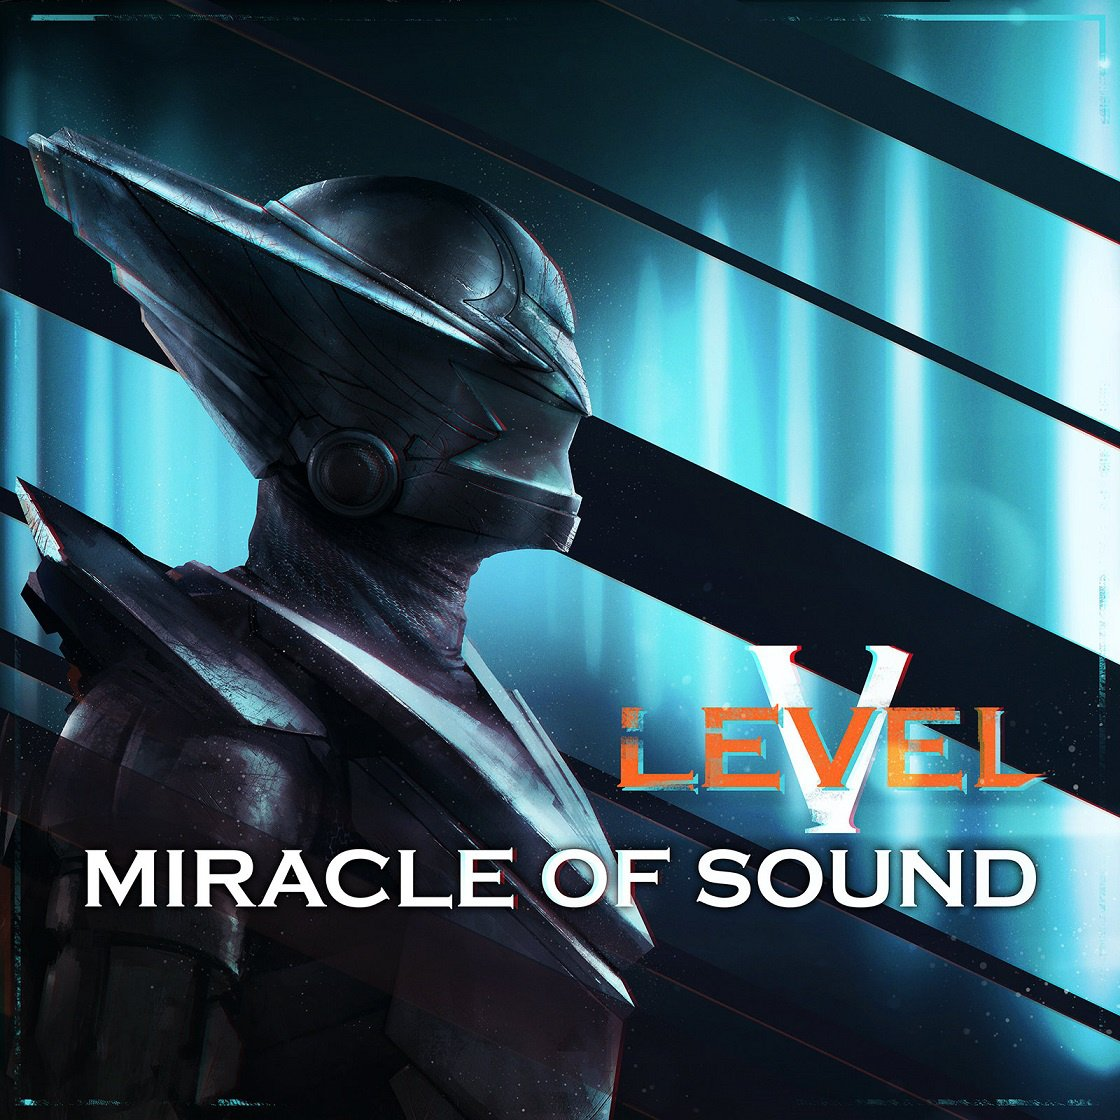 Miracle of sound level 5 album. - Изображение 1